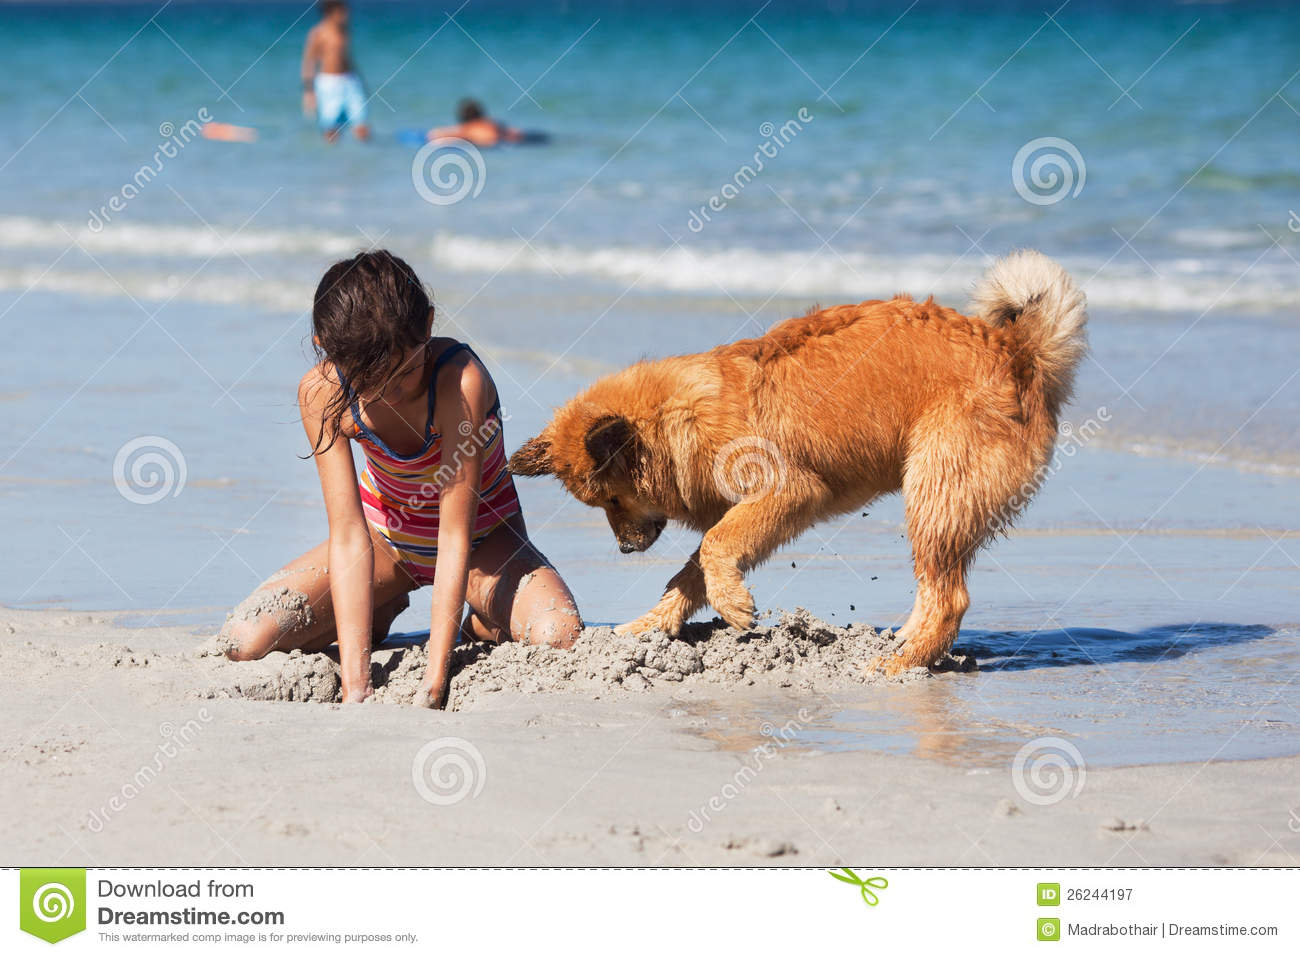 Girl and dog digging a hole at the beach